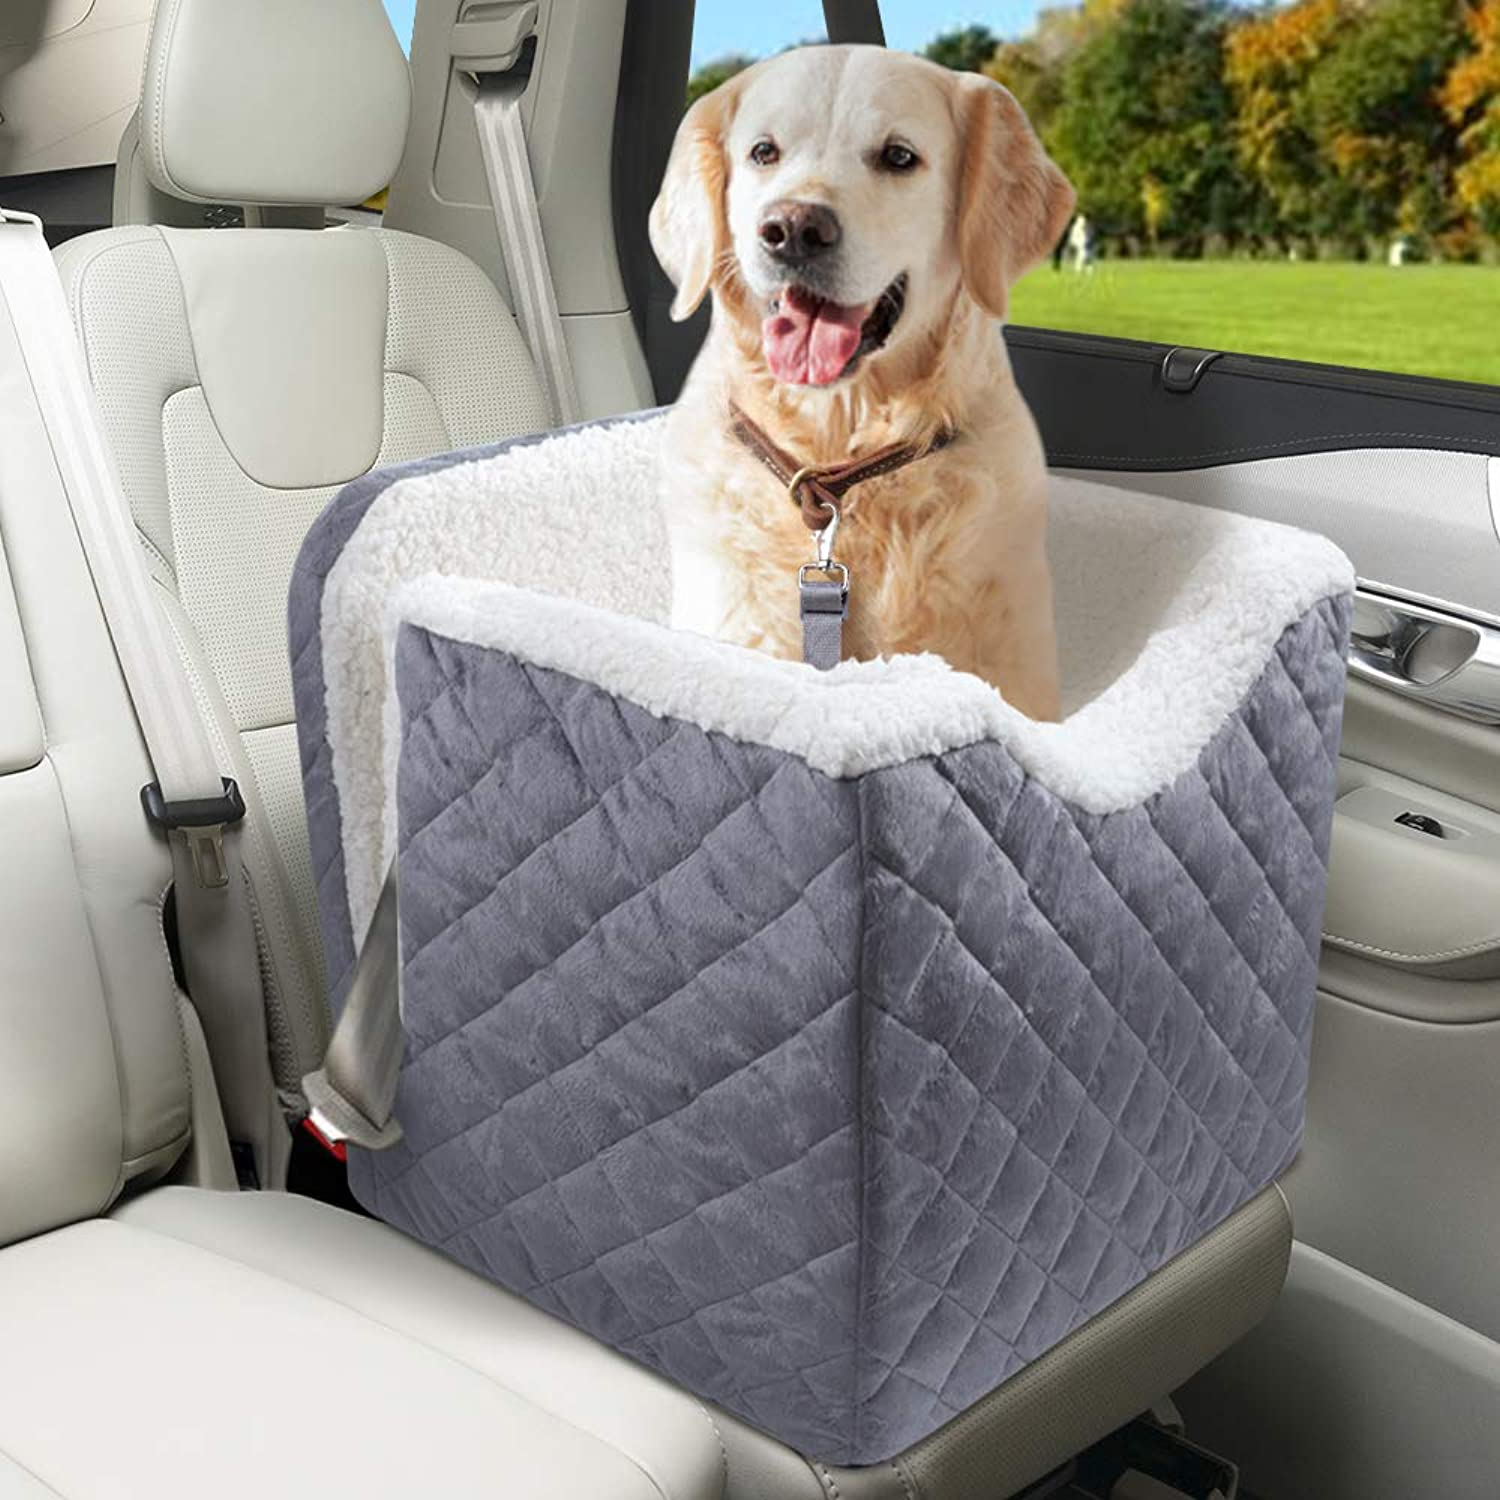 """BEAU JARDIN Dog Car Seat Raised Dog Booster Car Seats for Vehicles with 6"""" High Elevated Padded Seat Pet Car Seat Safety Car Seat for Dogs with Safety Harness for Medium and Large Dogs Travel Carrier"""